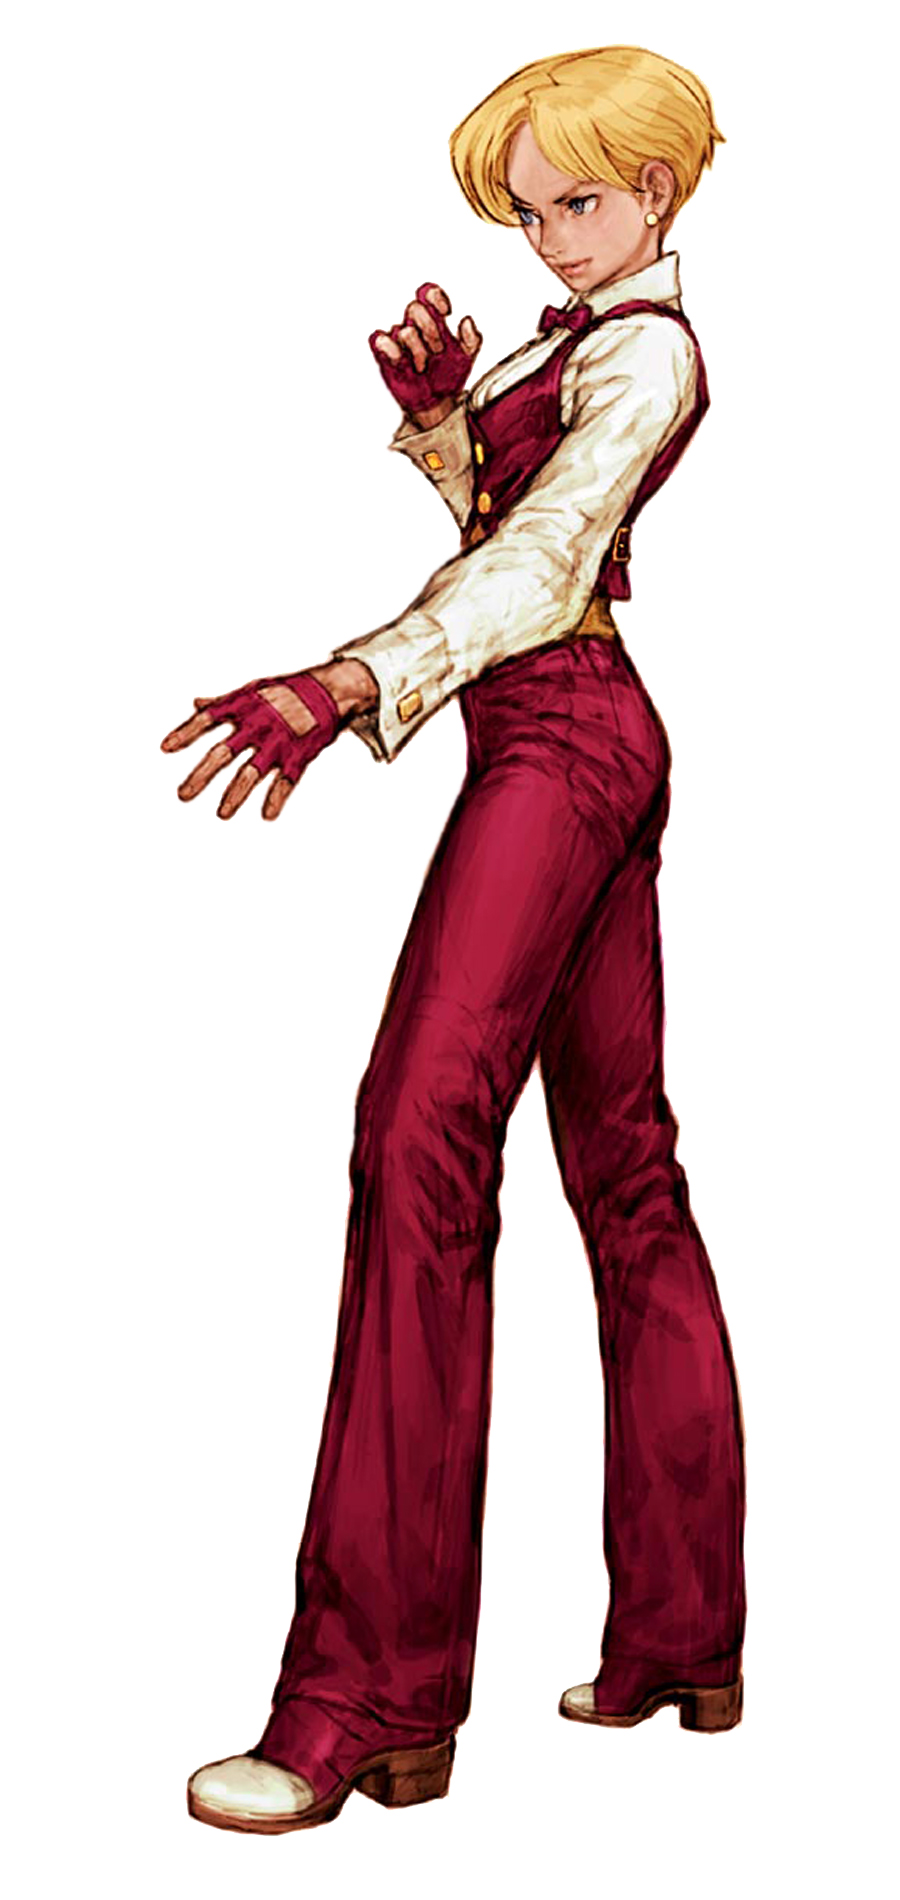 King Of Coins Pentacles As Advice: King (Art Of Fighting / KOF